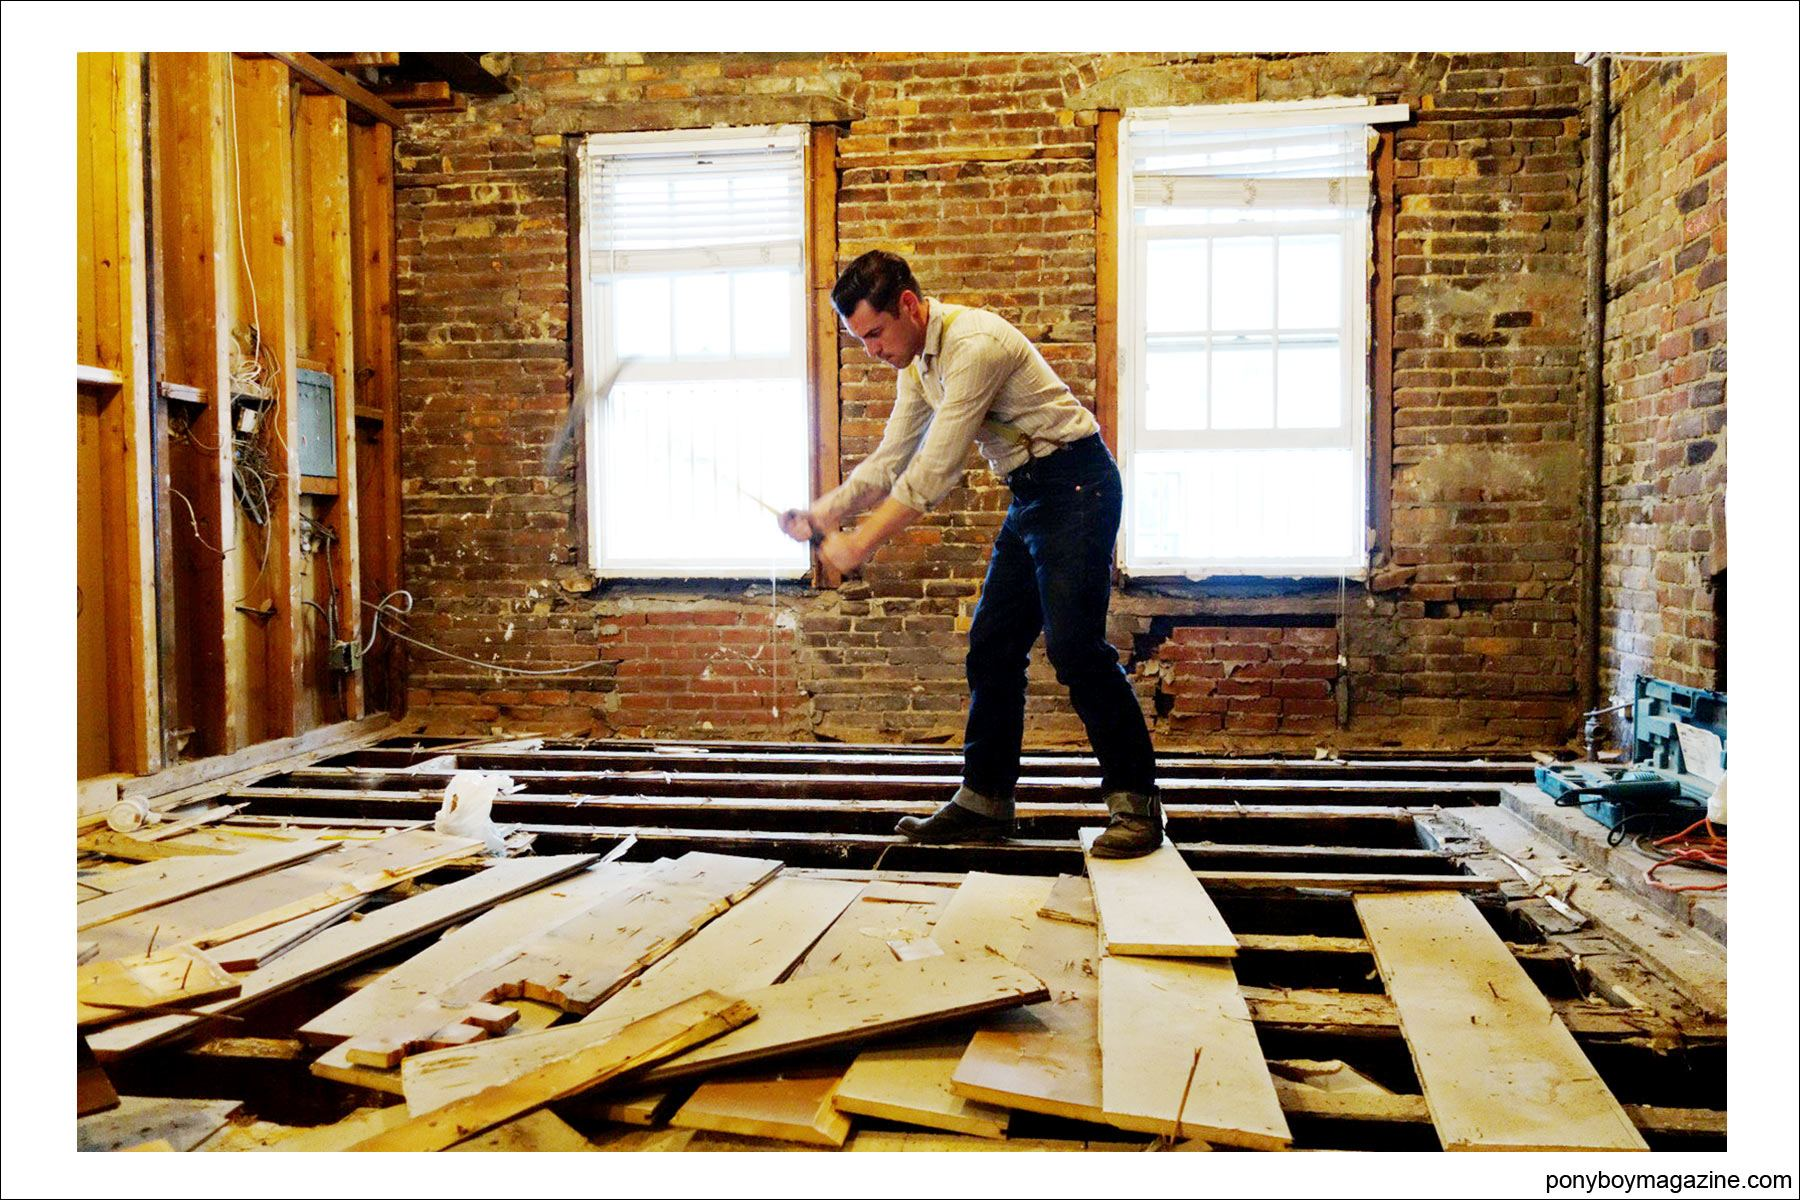 Carpenter Jim Lanwehr, hard at work, for Ponyboy Magazine.